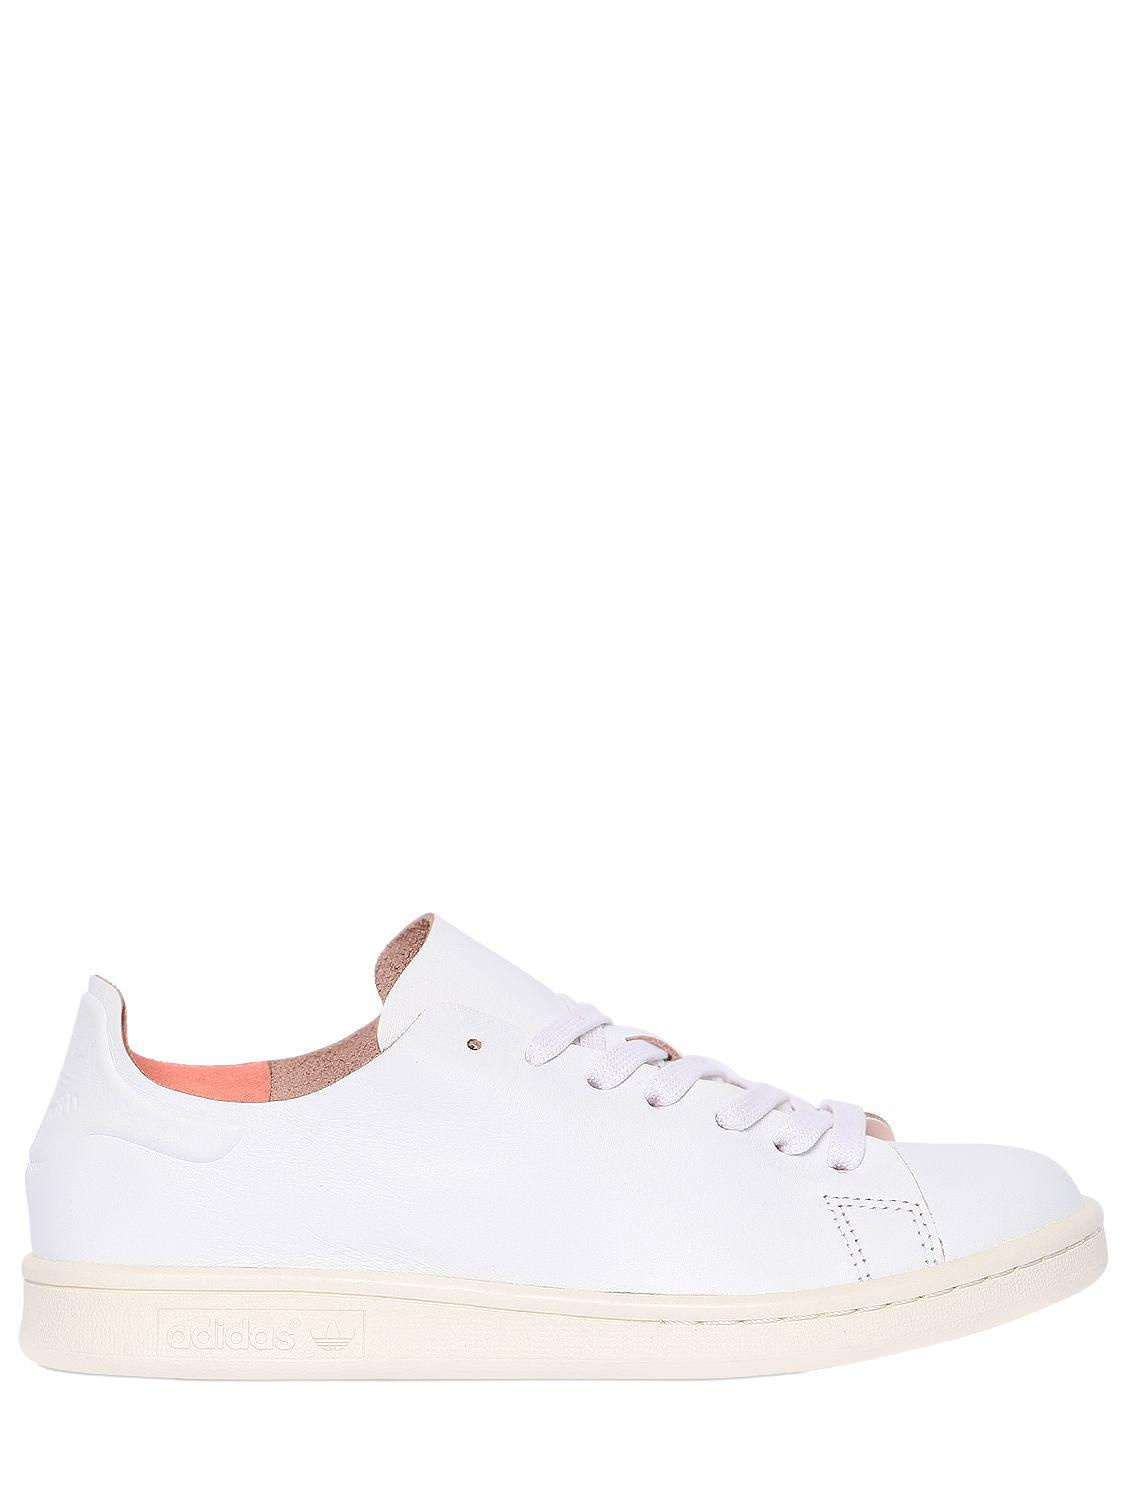 adidas STAN SMITH MINIMALIST SNEAKERS TGBeFWM